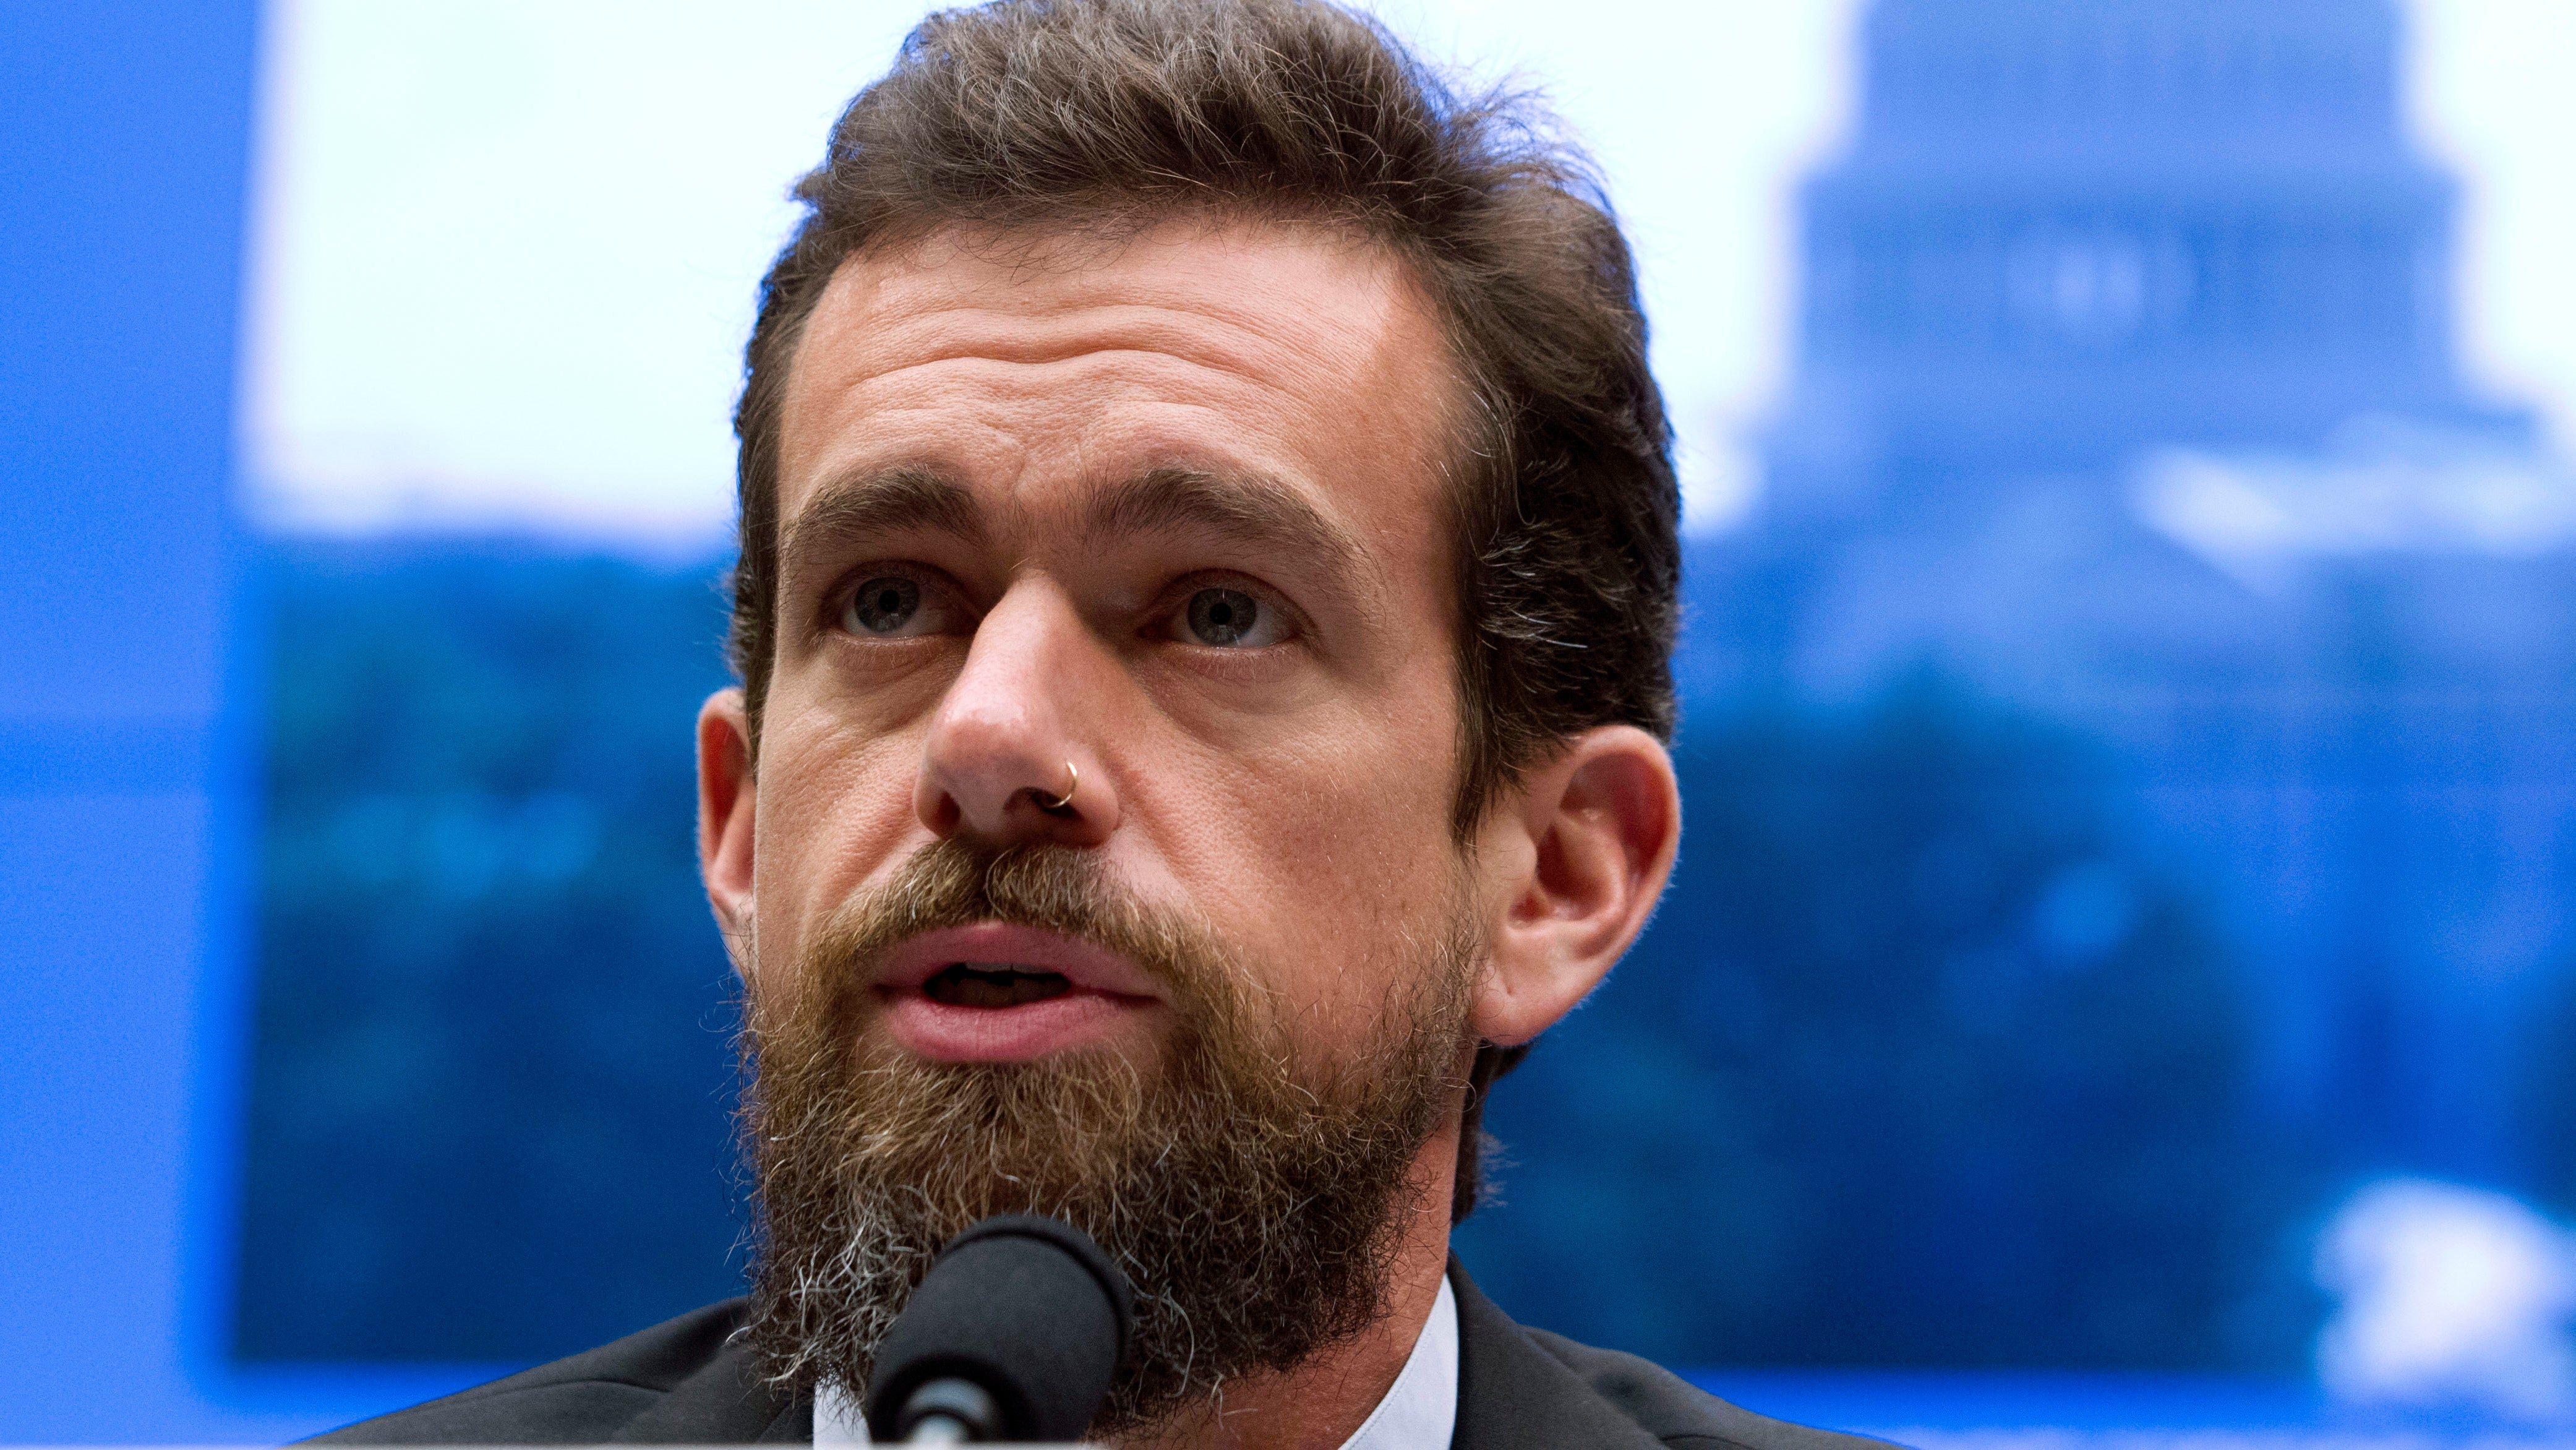 Twitter CEO's Newest Podcast Bud Is A Guy Who Claims Vaccines Cause Autism